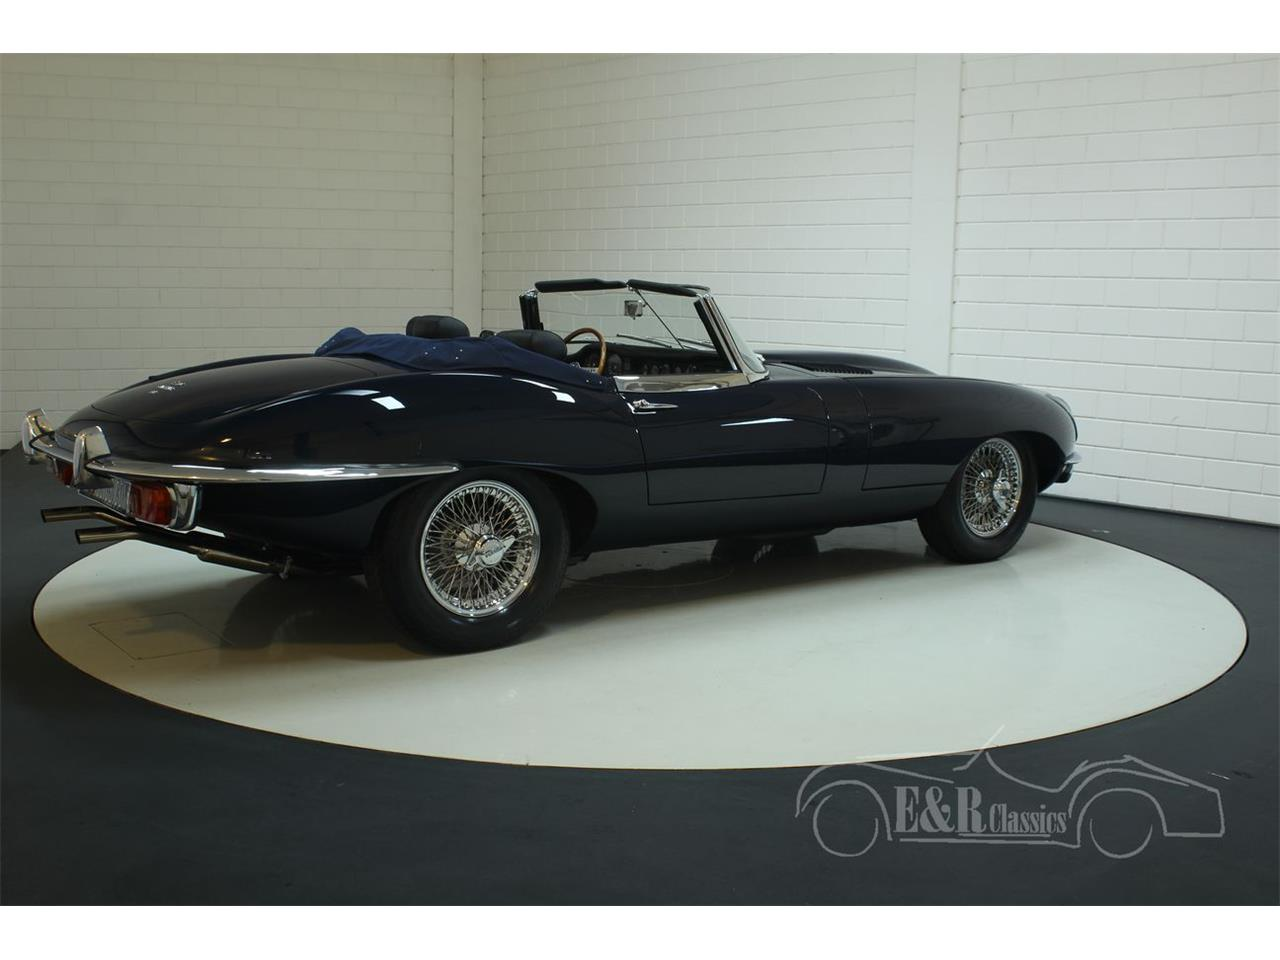 Large Picture of Classic 1969 Jaguar E-Type located in Waalwijk Noord-Brabant - $139,400.00 - Q45K